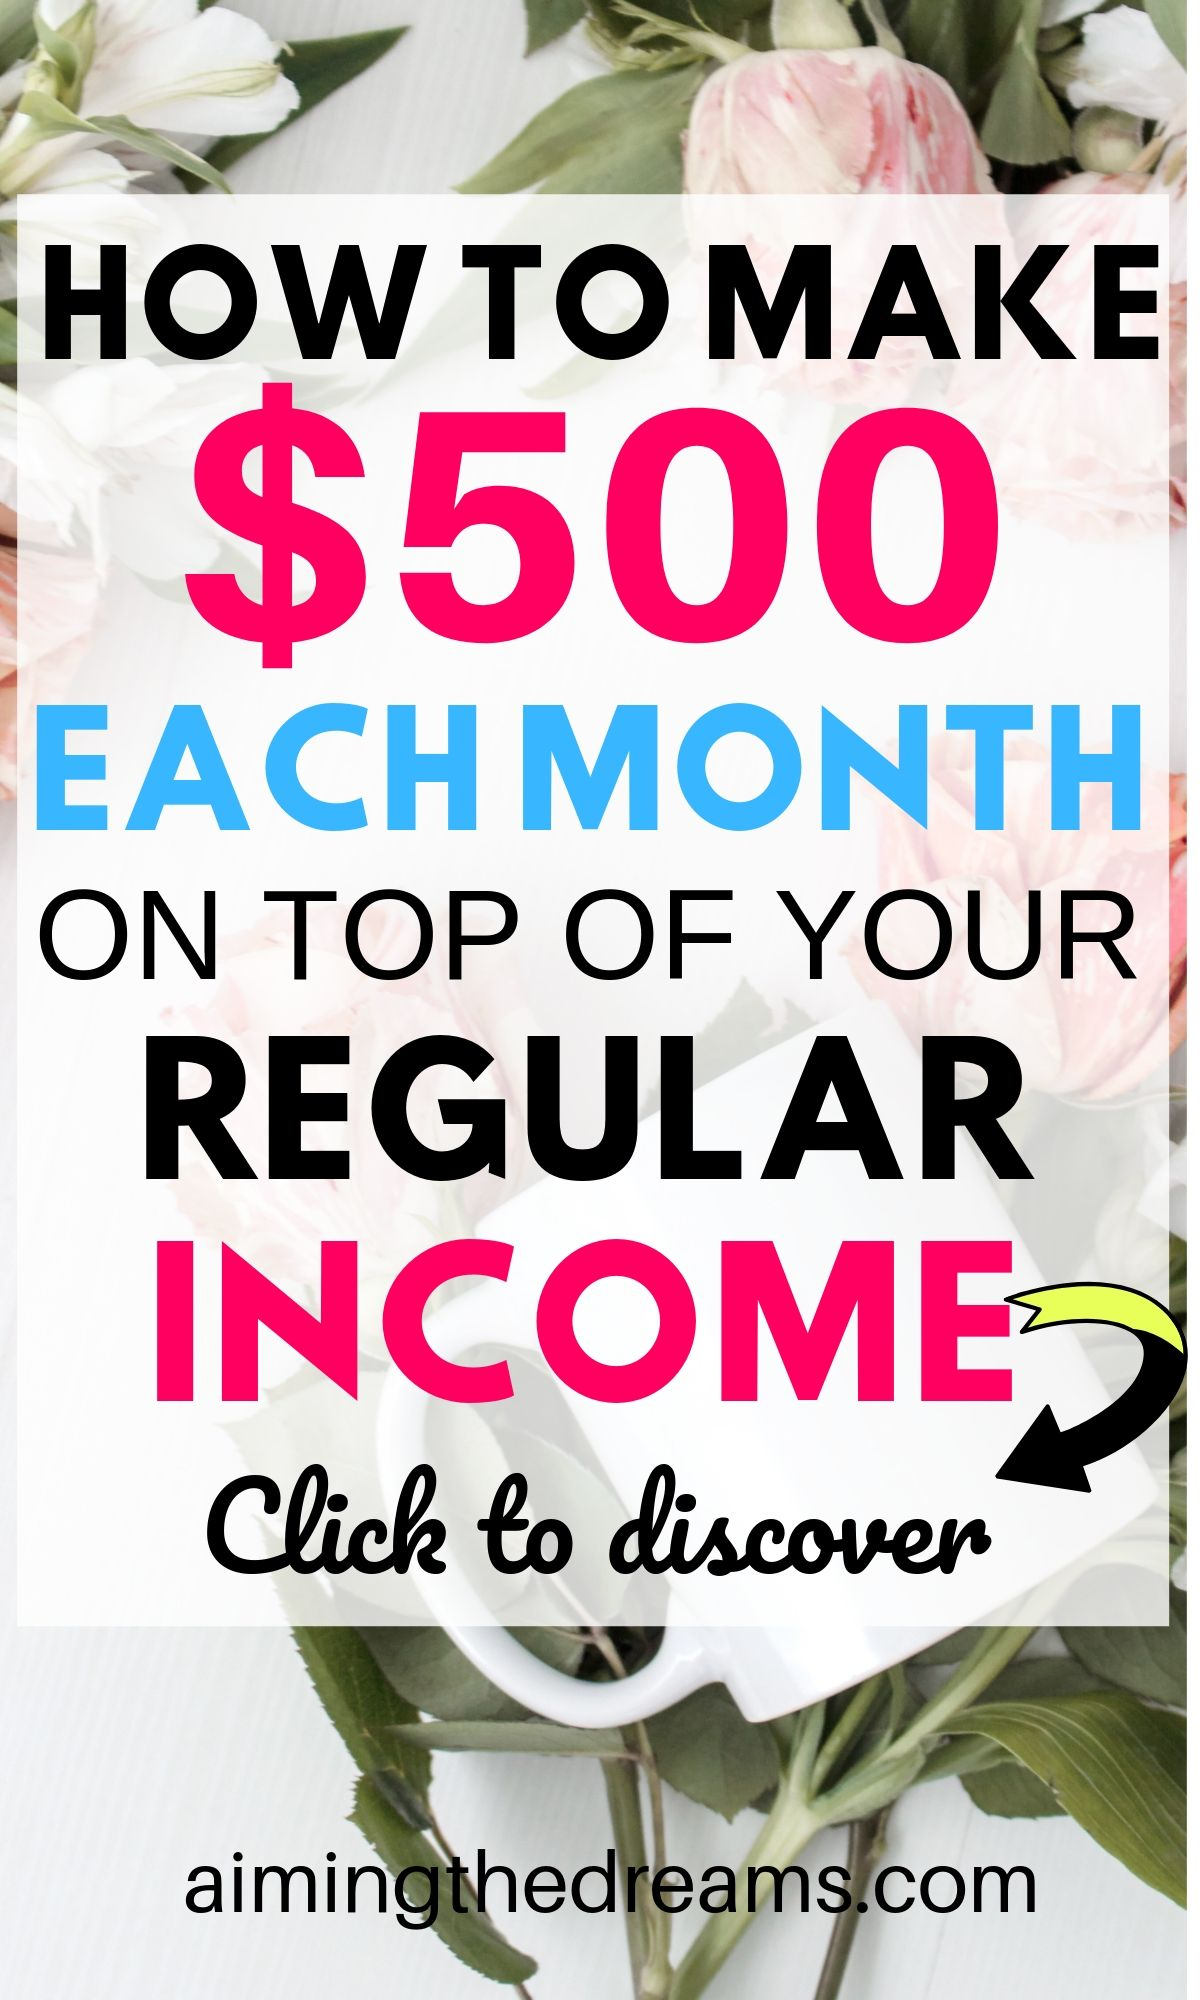 How to make $500 each month on top of your regular income. it is possible to make some extra money with side hustles to work from home.